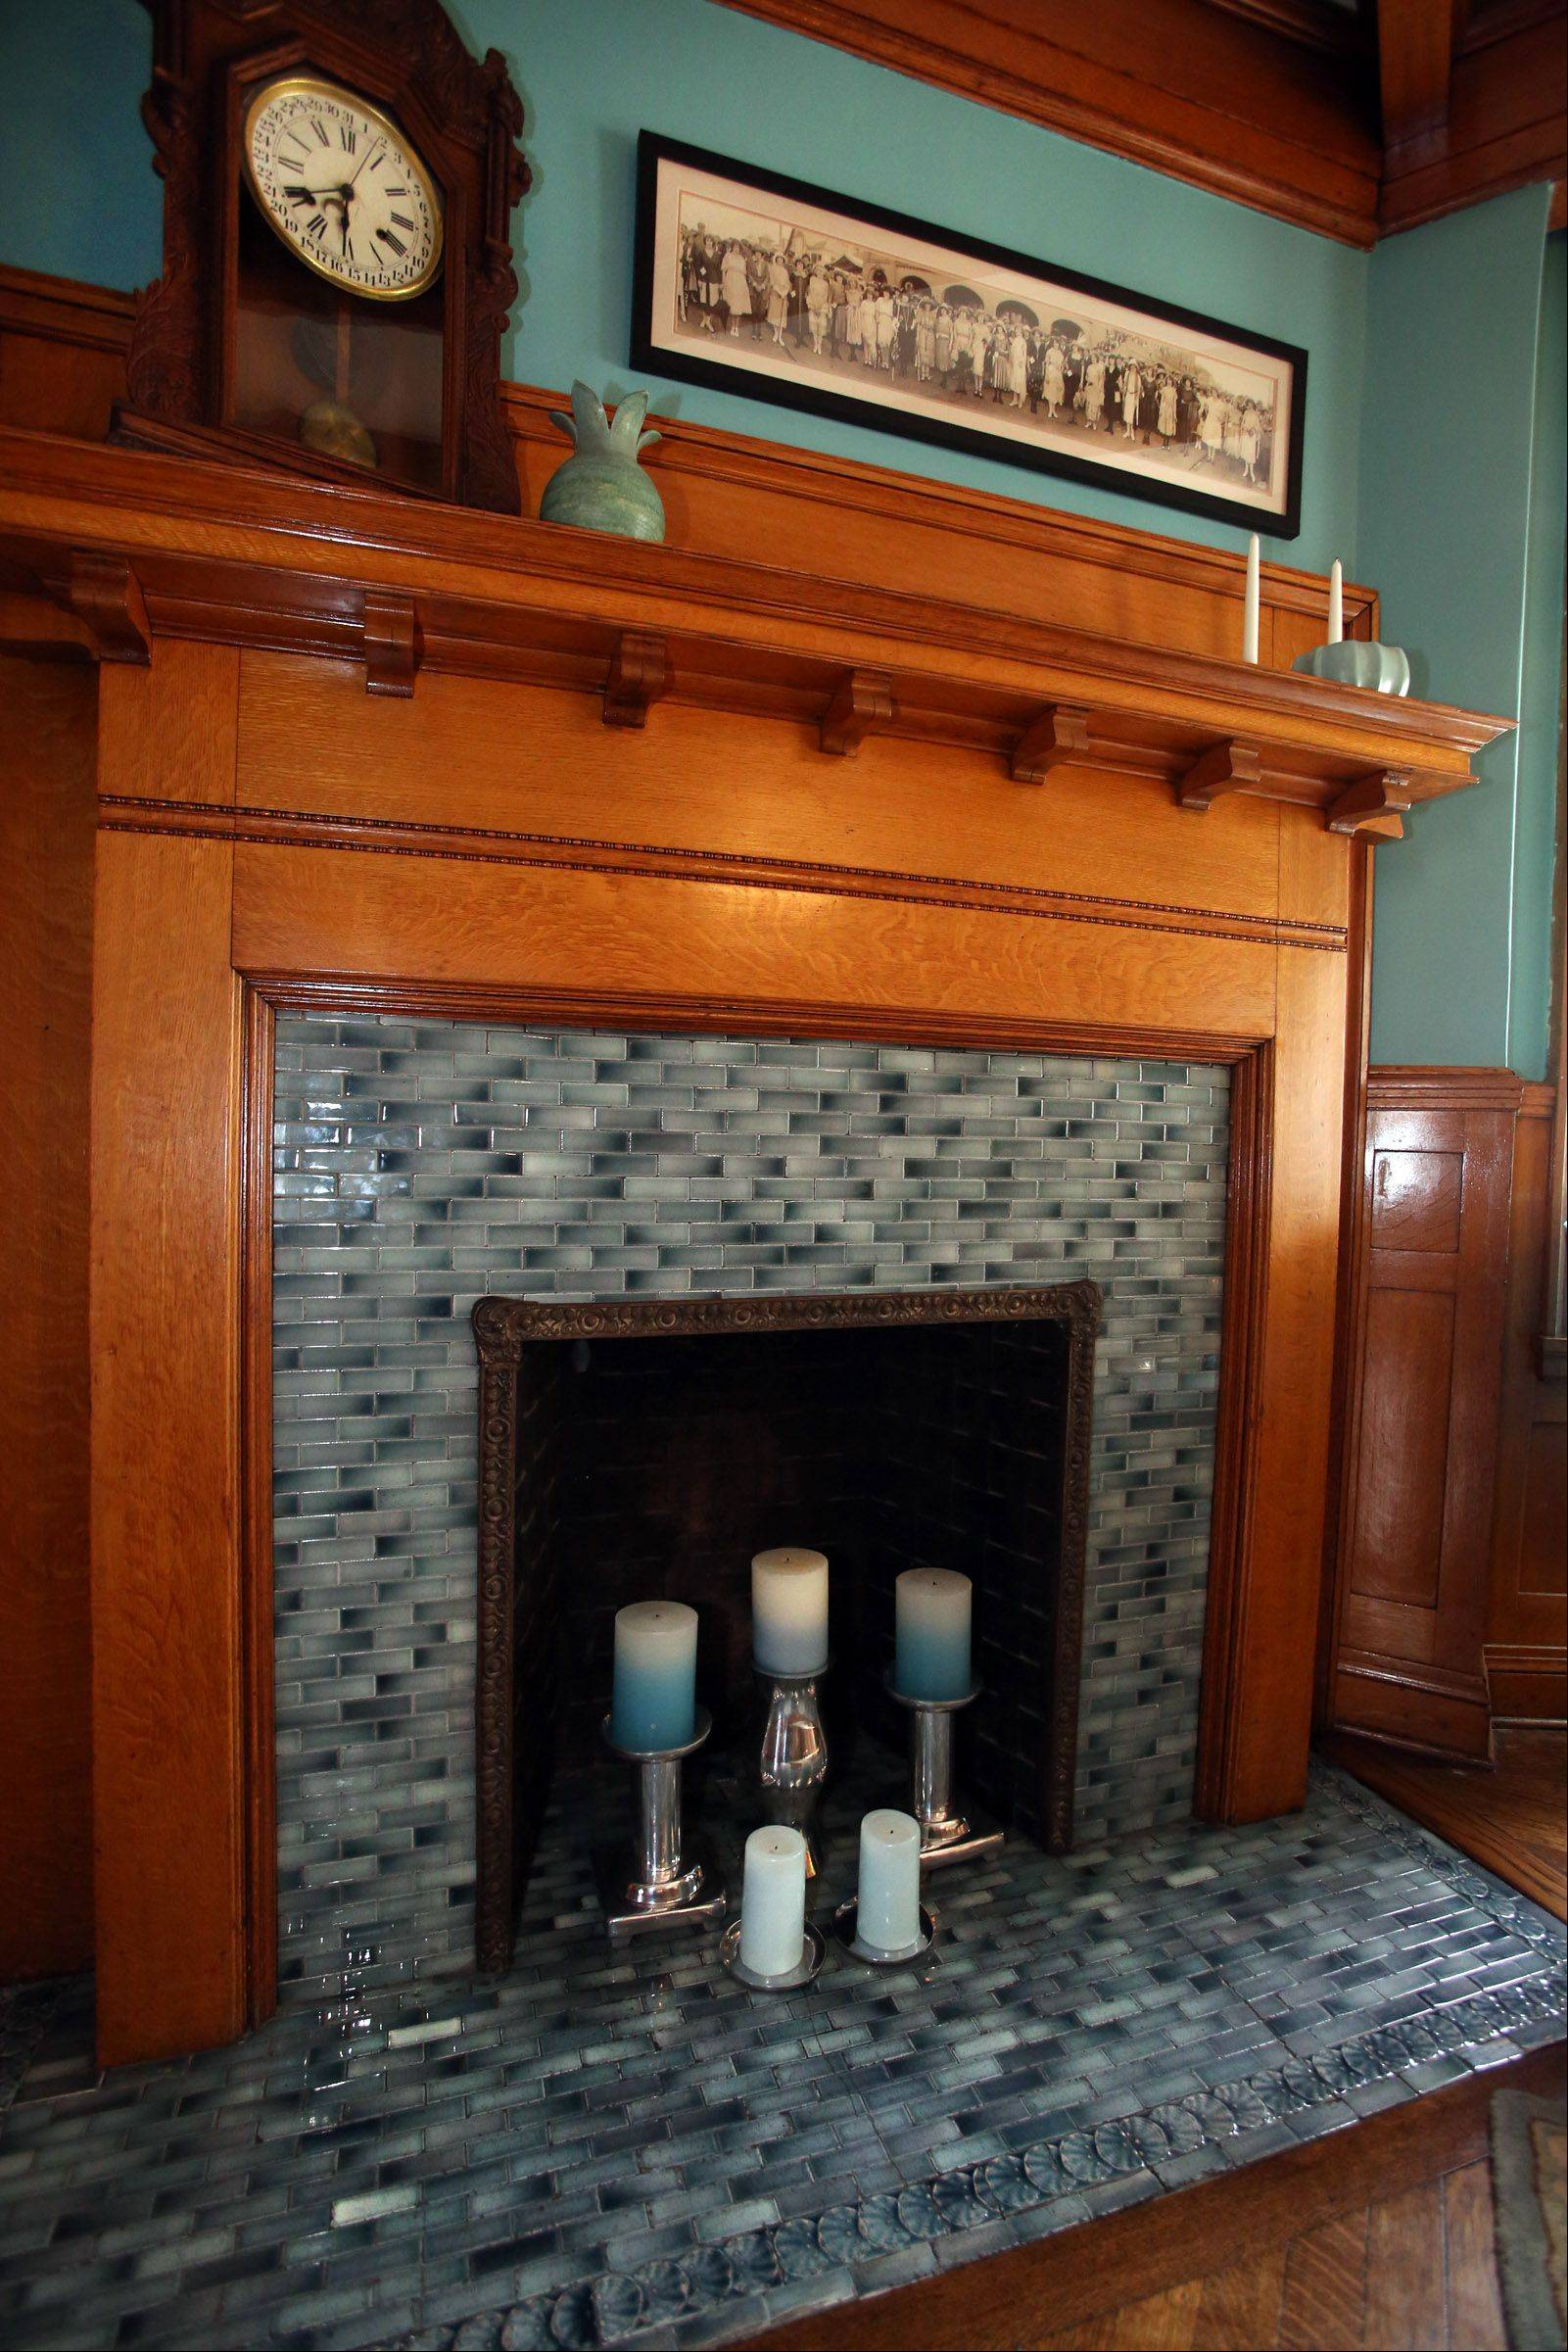 The fireplace in the Thompsons' dining room shows turquoise tiles, matched by the room's walls.